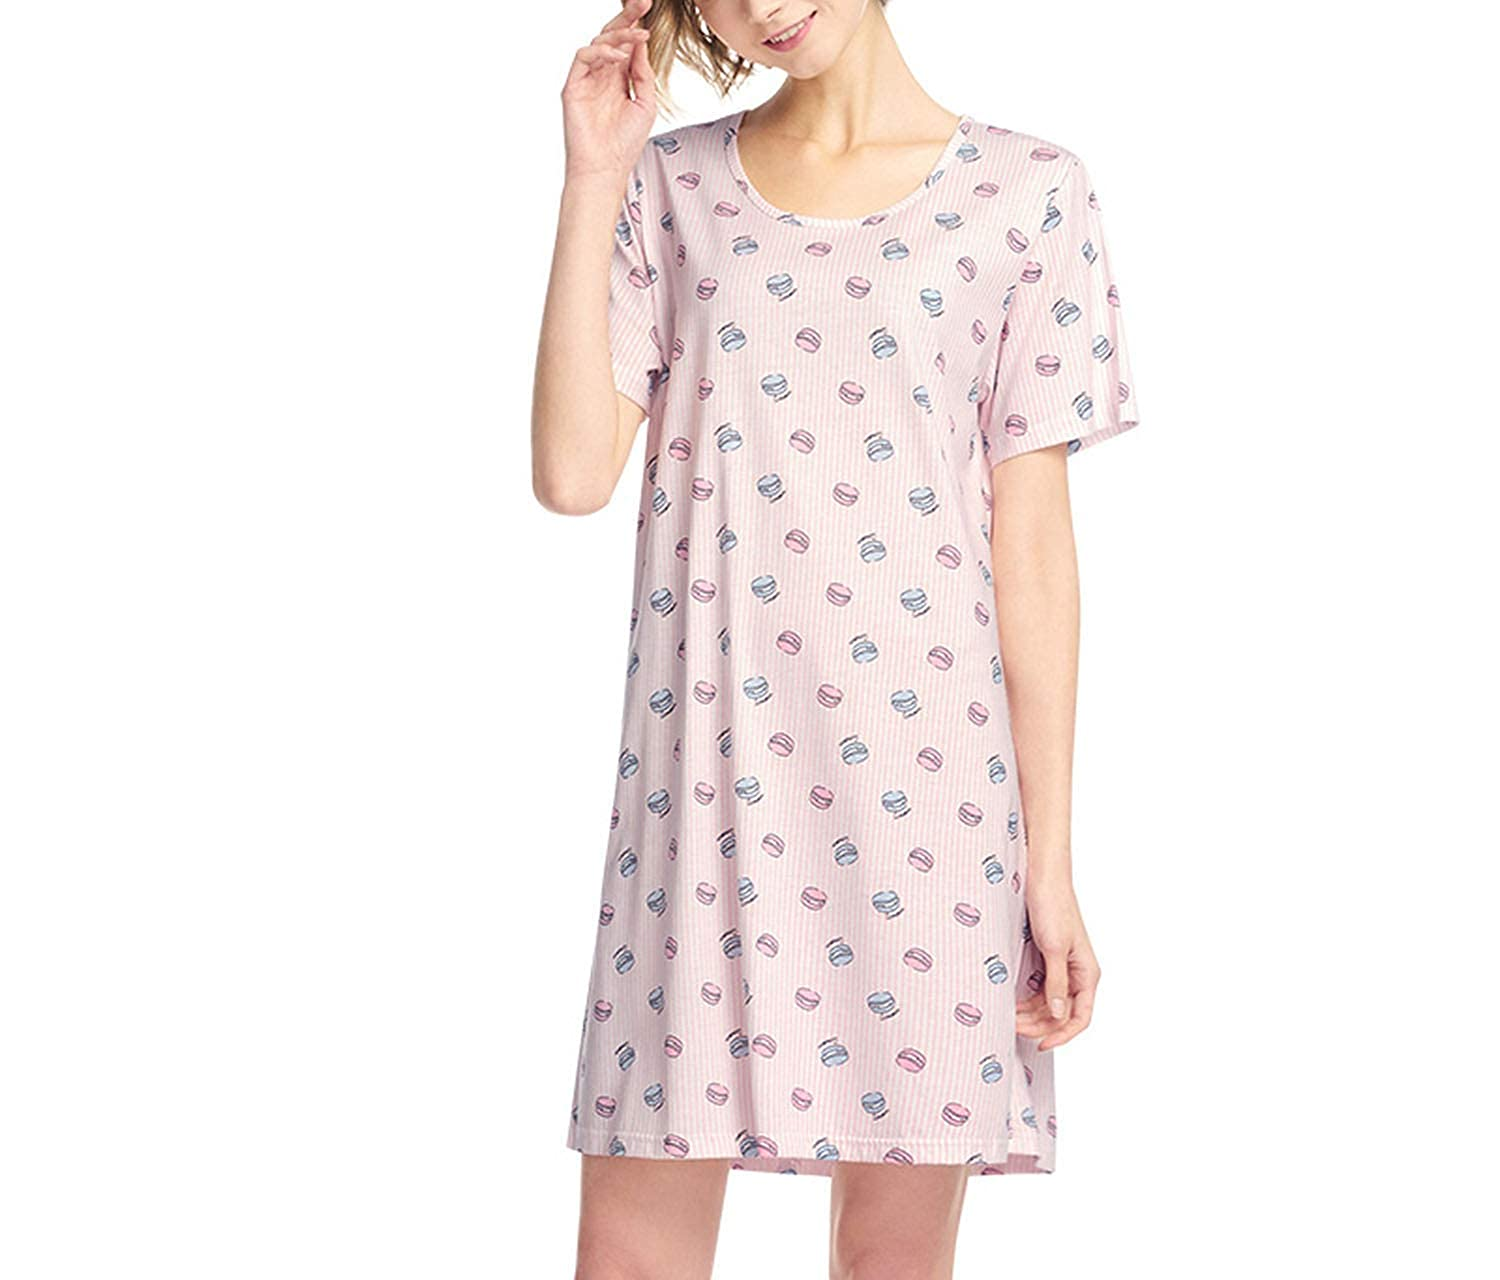 Macaron1 Blouses HeatTracing Womens Sexy Sleepshirts Nightdress Cotton Printed Fashion Straps Cute Floral Casual Camisole